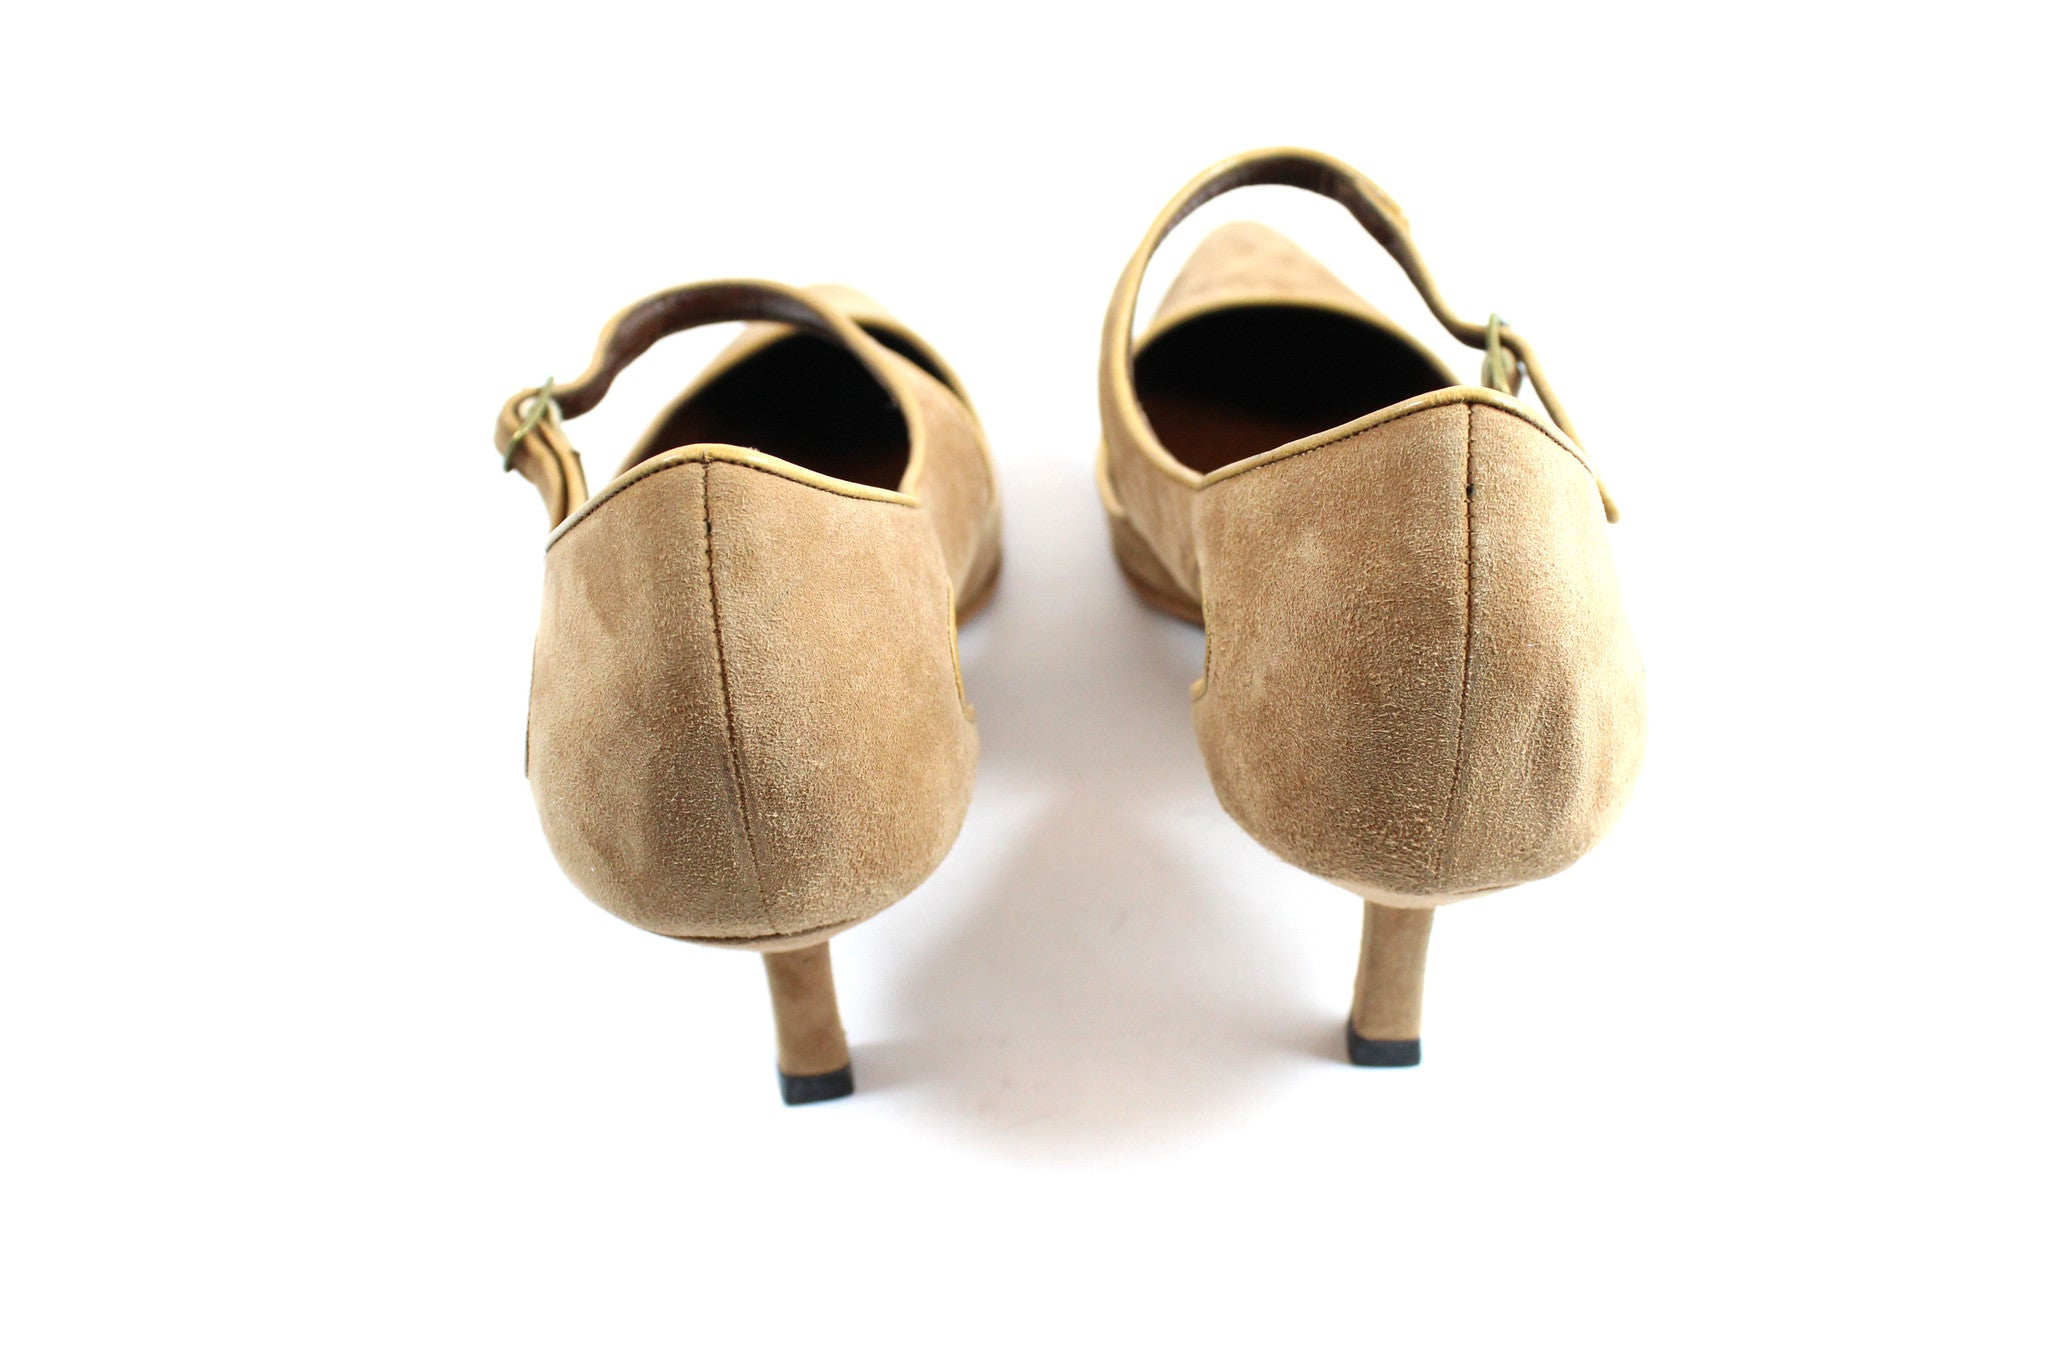 Manolo Blahnik Camel Suede Cut Out Mary Janes (Size 41) - Encore Consignment - 5